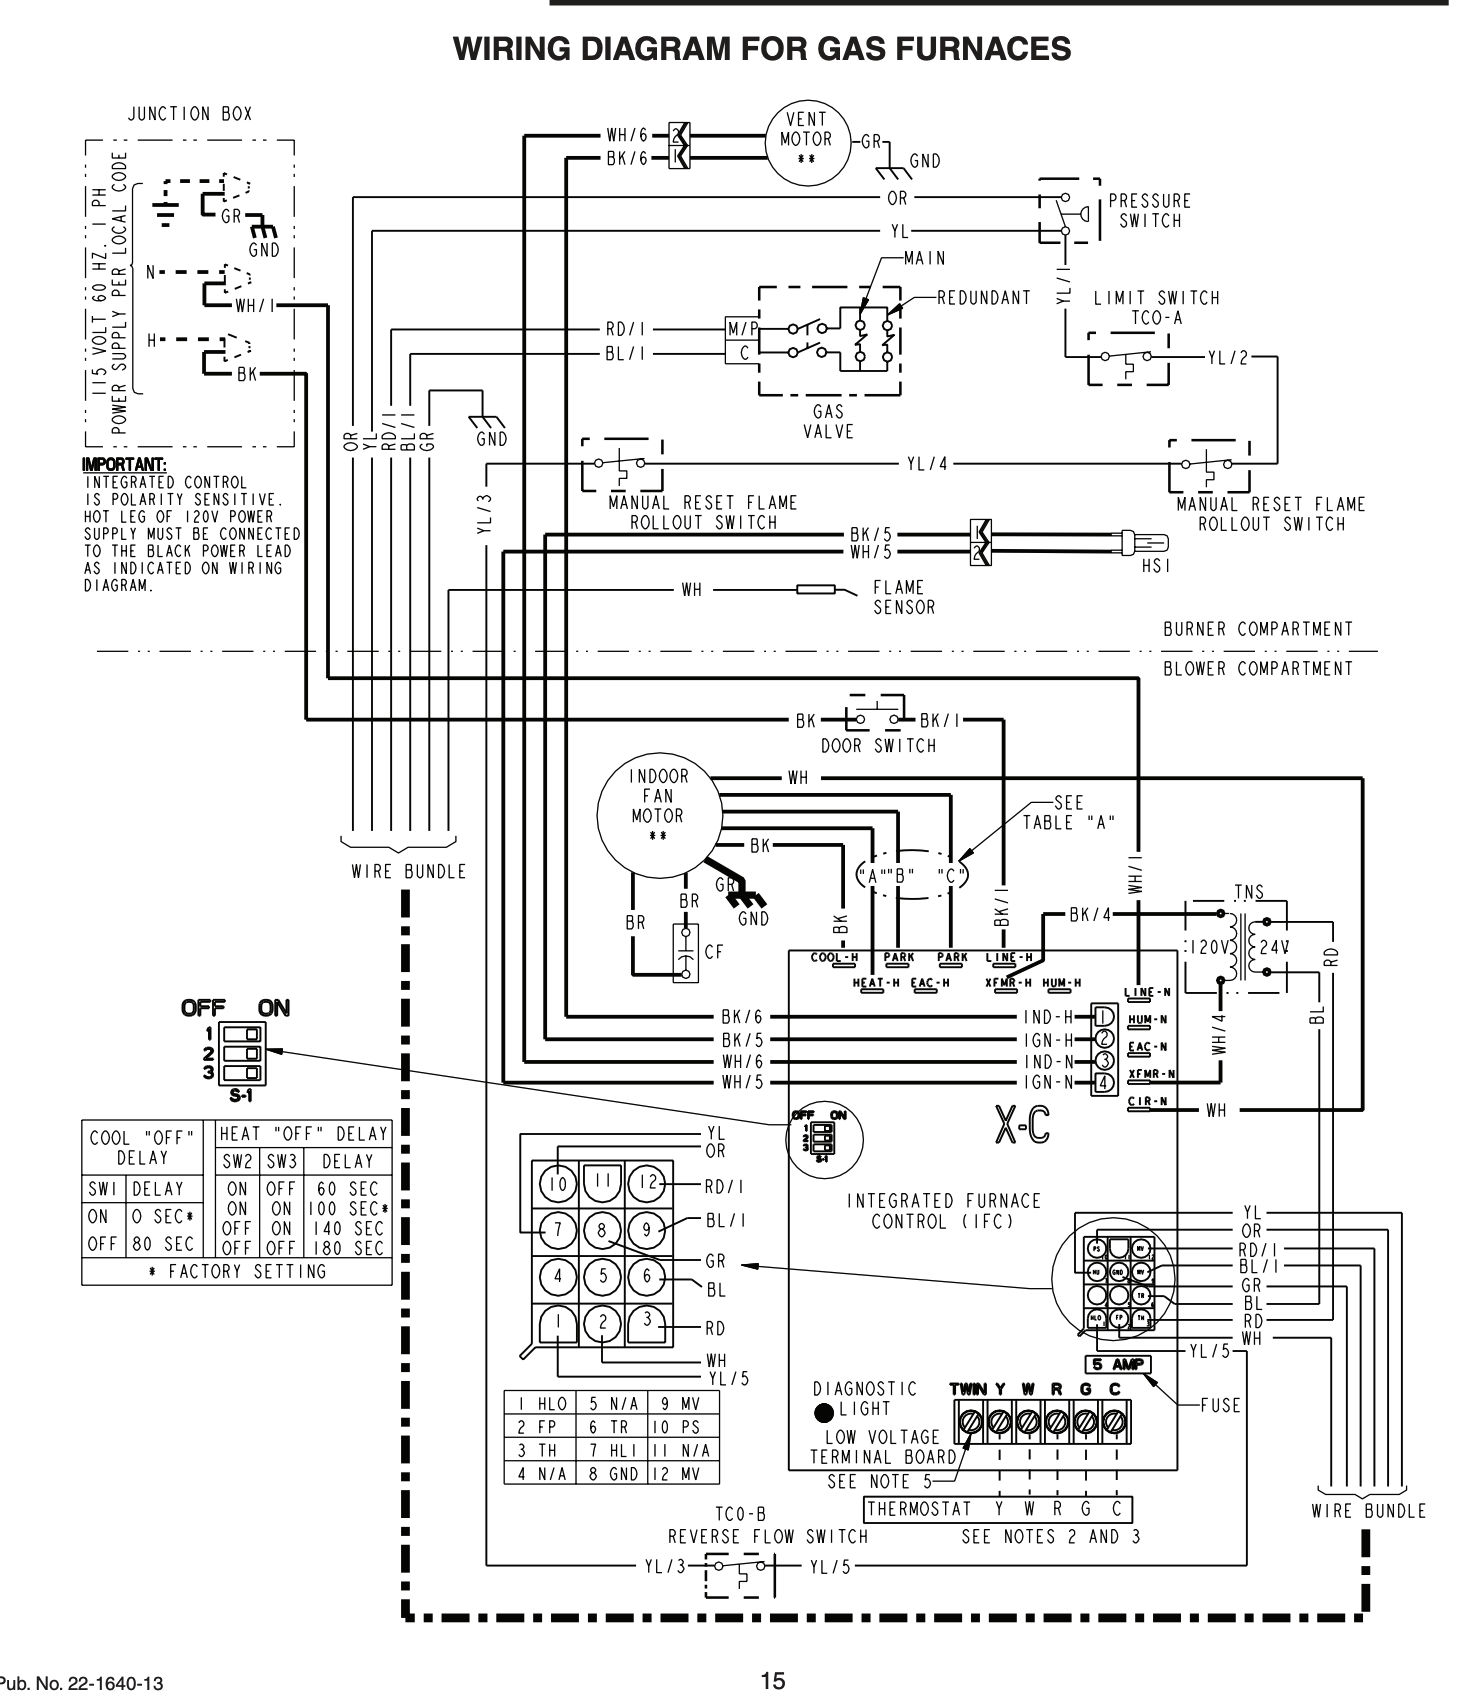 trane furnace diagram